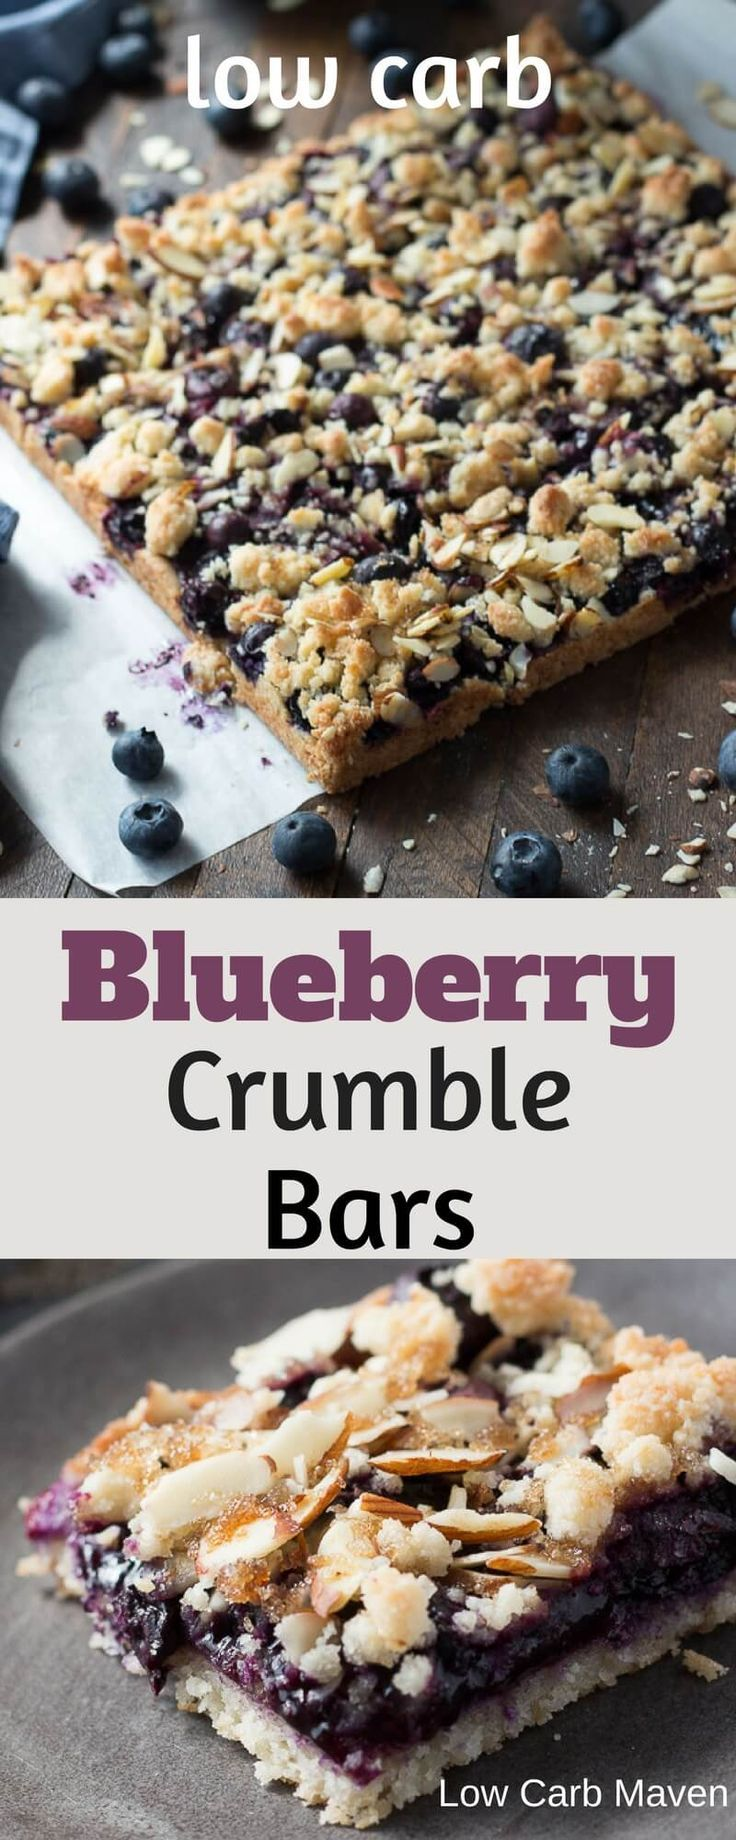 Enjoy these Blueberry Crumble Bars year round. They're a great low carb keto dessert. Sugar-free.